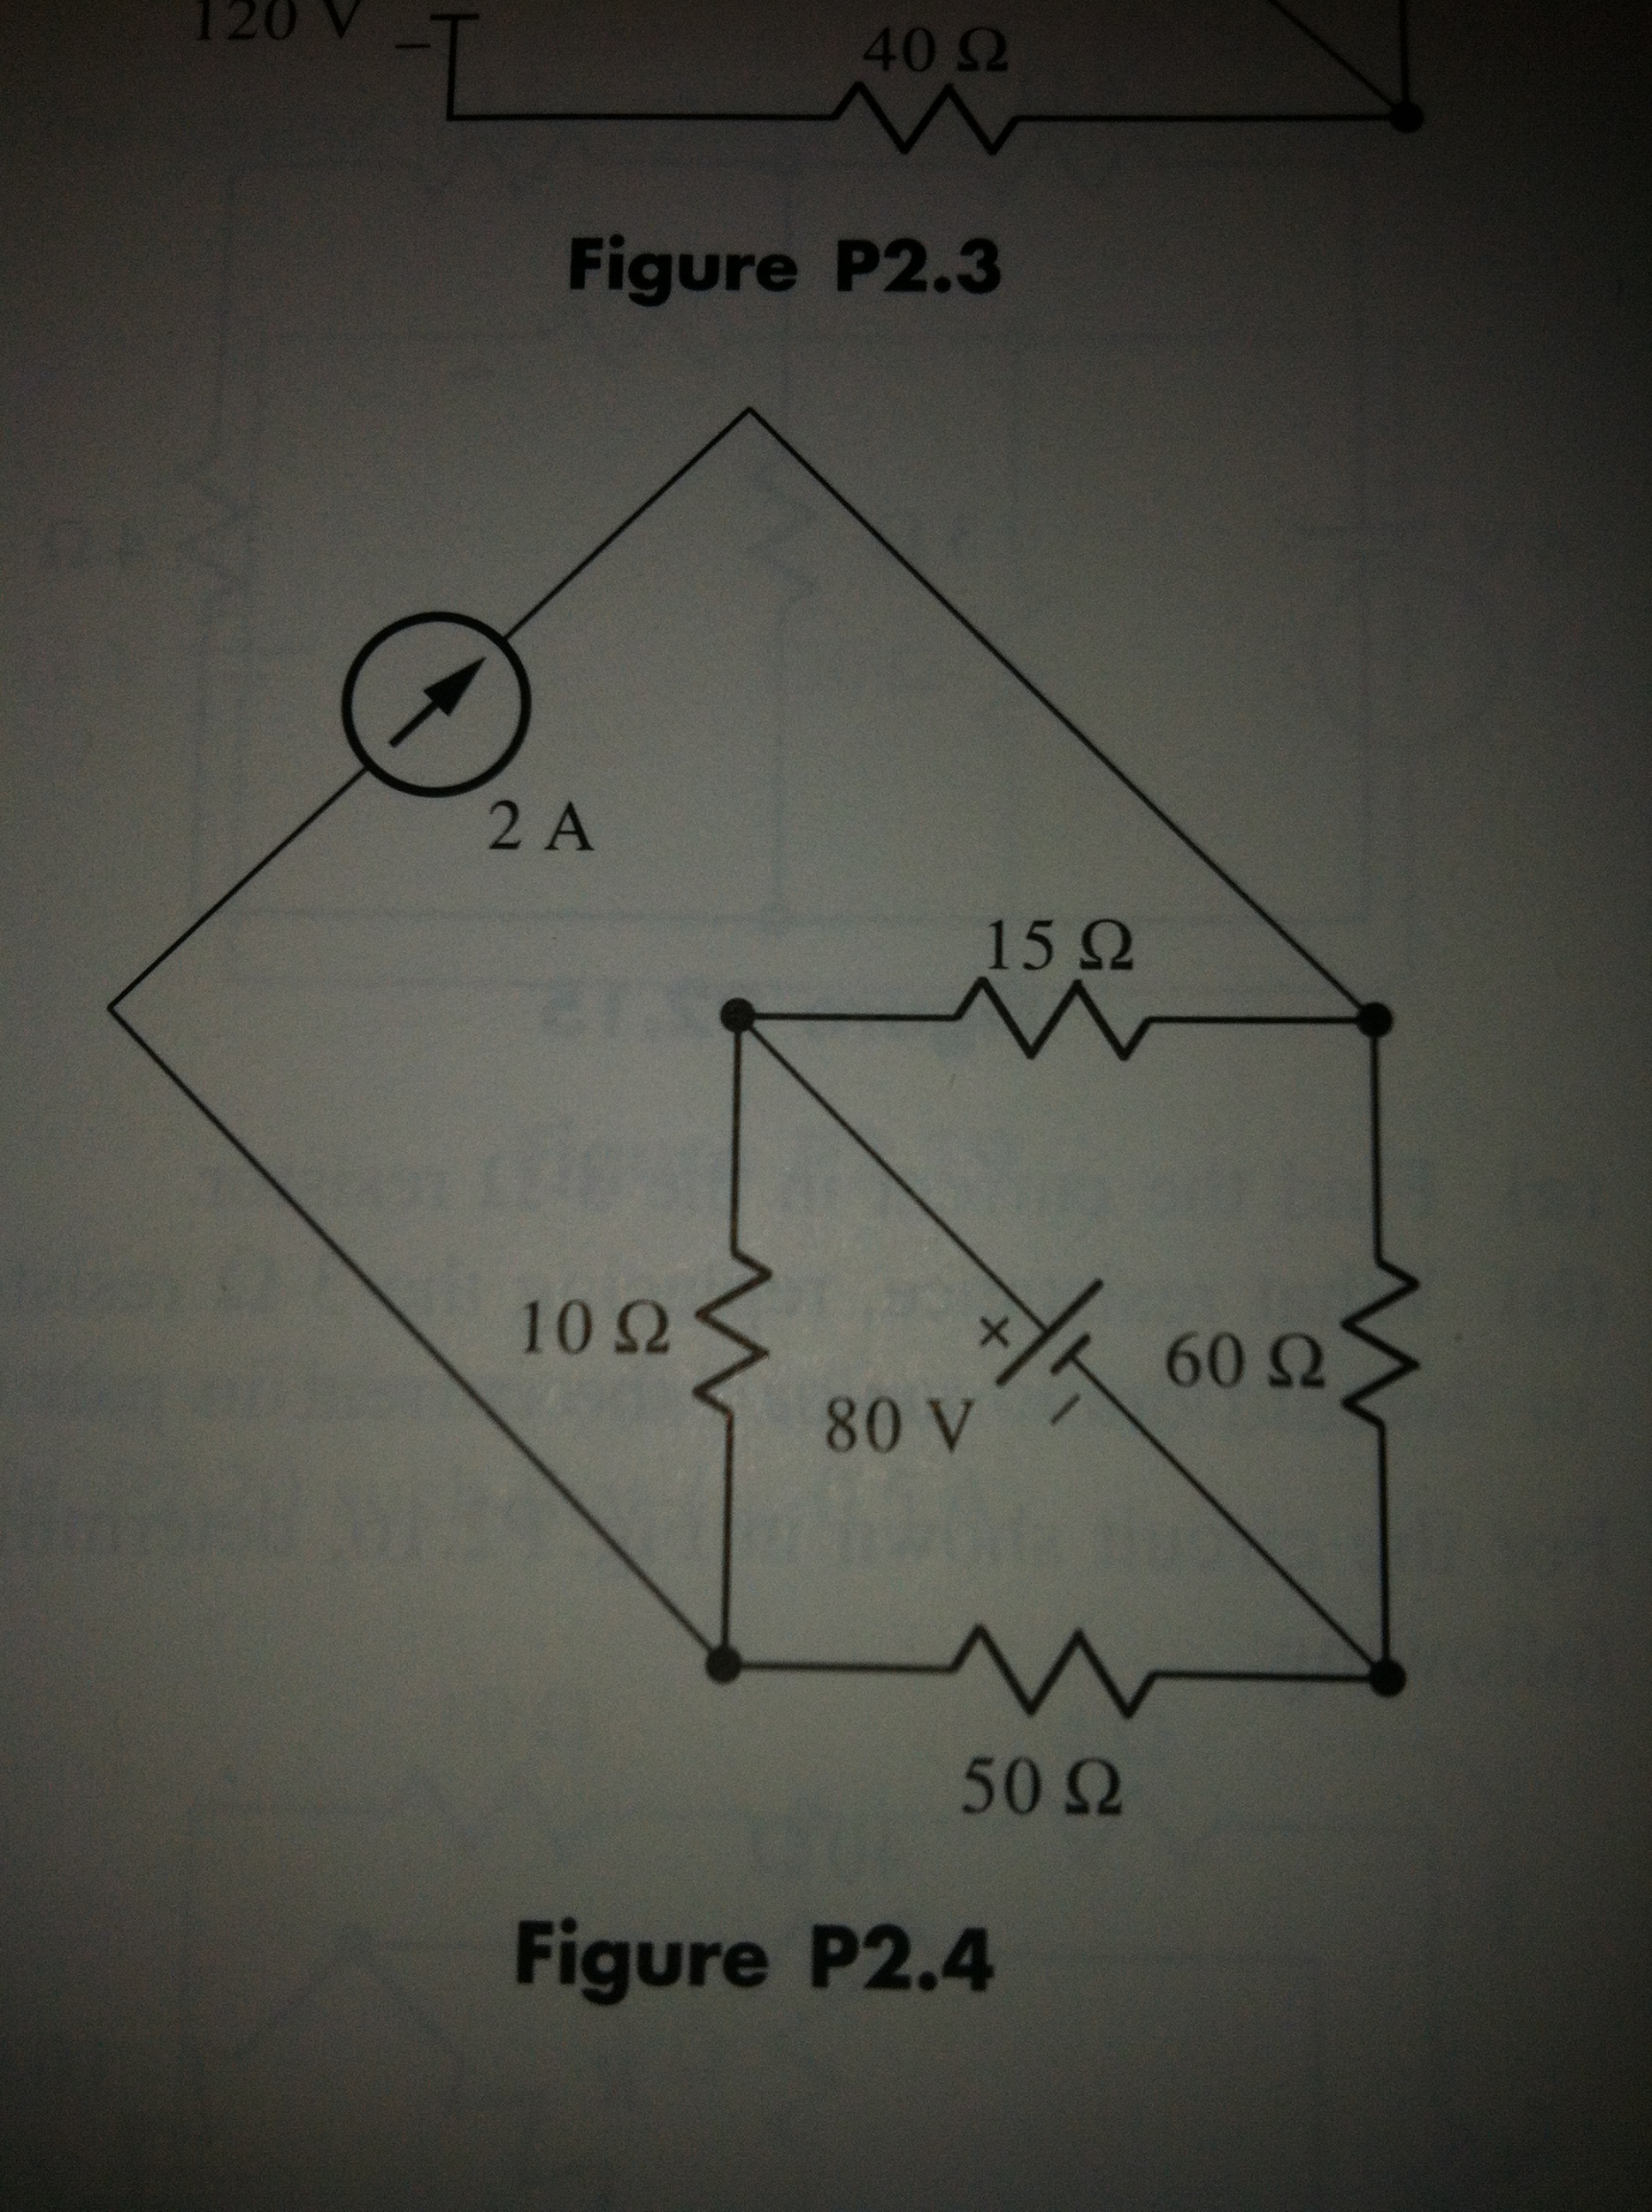 For the circuit shown in Fig. P2.4, determine the